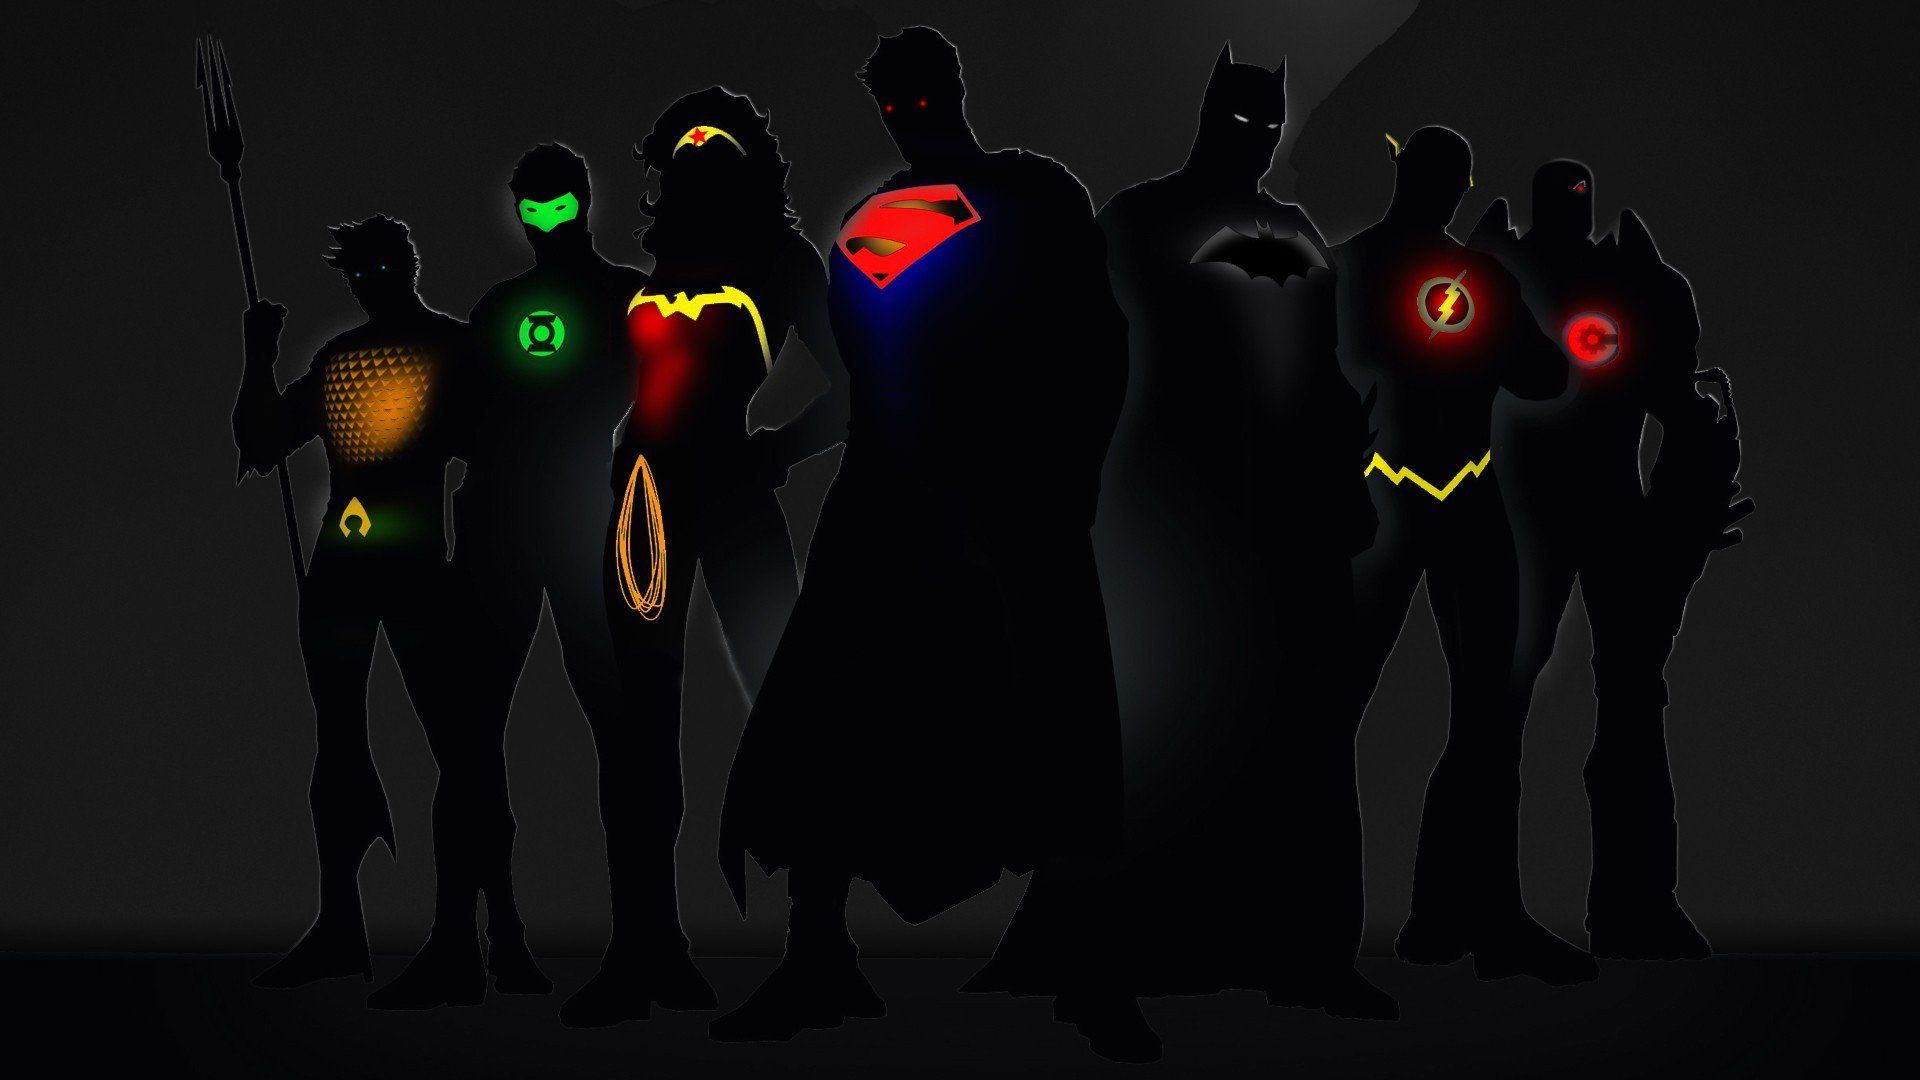 50 wallpapers full hd super hroes yapa seguro te llevas hero superhero wallpaper iphone posted on movies category and having image with title superhero wallpaper iphone with high resolution desktop wallpaper voltagebd Images